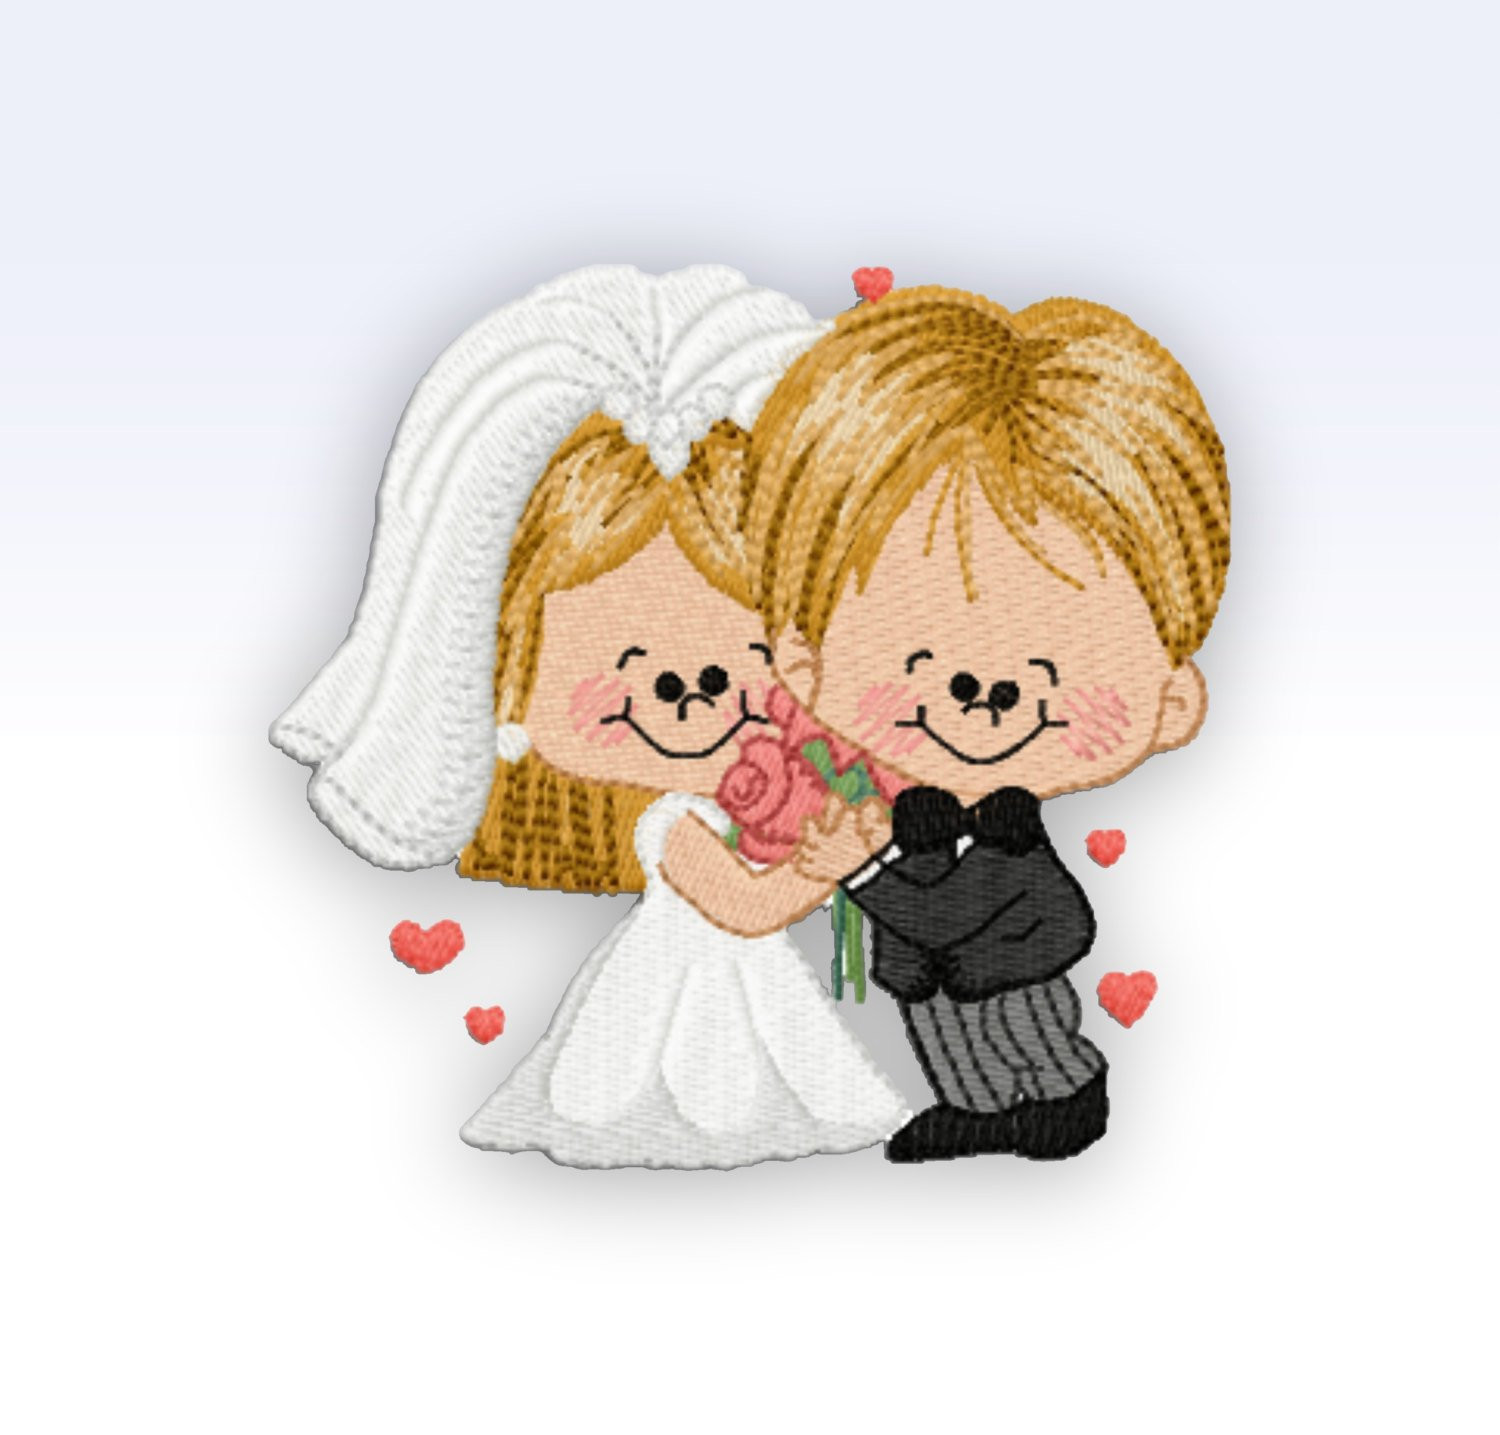 Awesome Wedding Machine Embroidery Design Wedding Couple 4 Wedding Embroidery Designs Of Wonderful 48 Photos Wedding Embroidery Designs